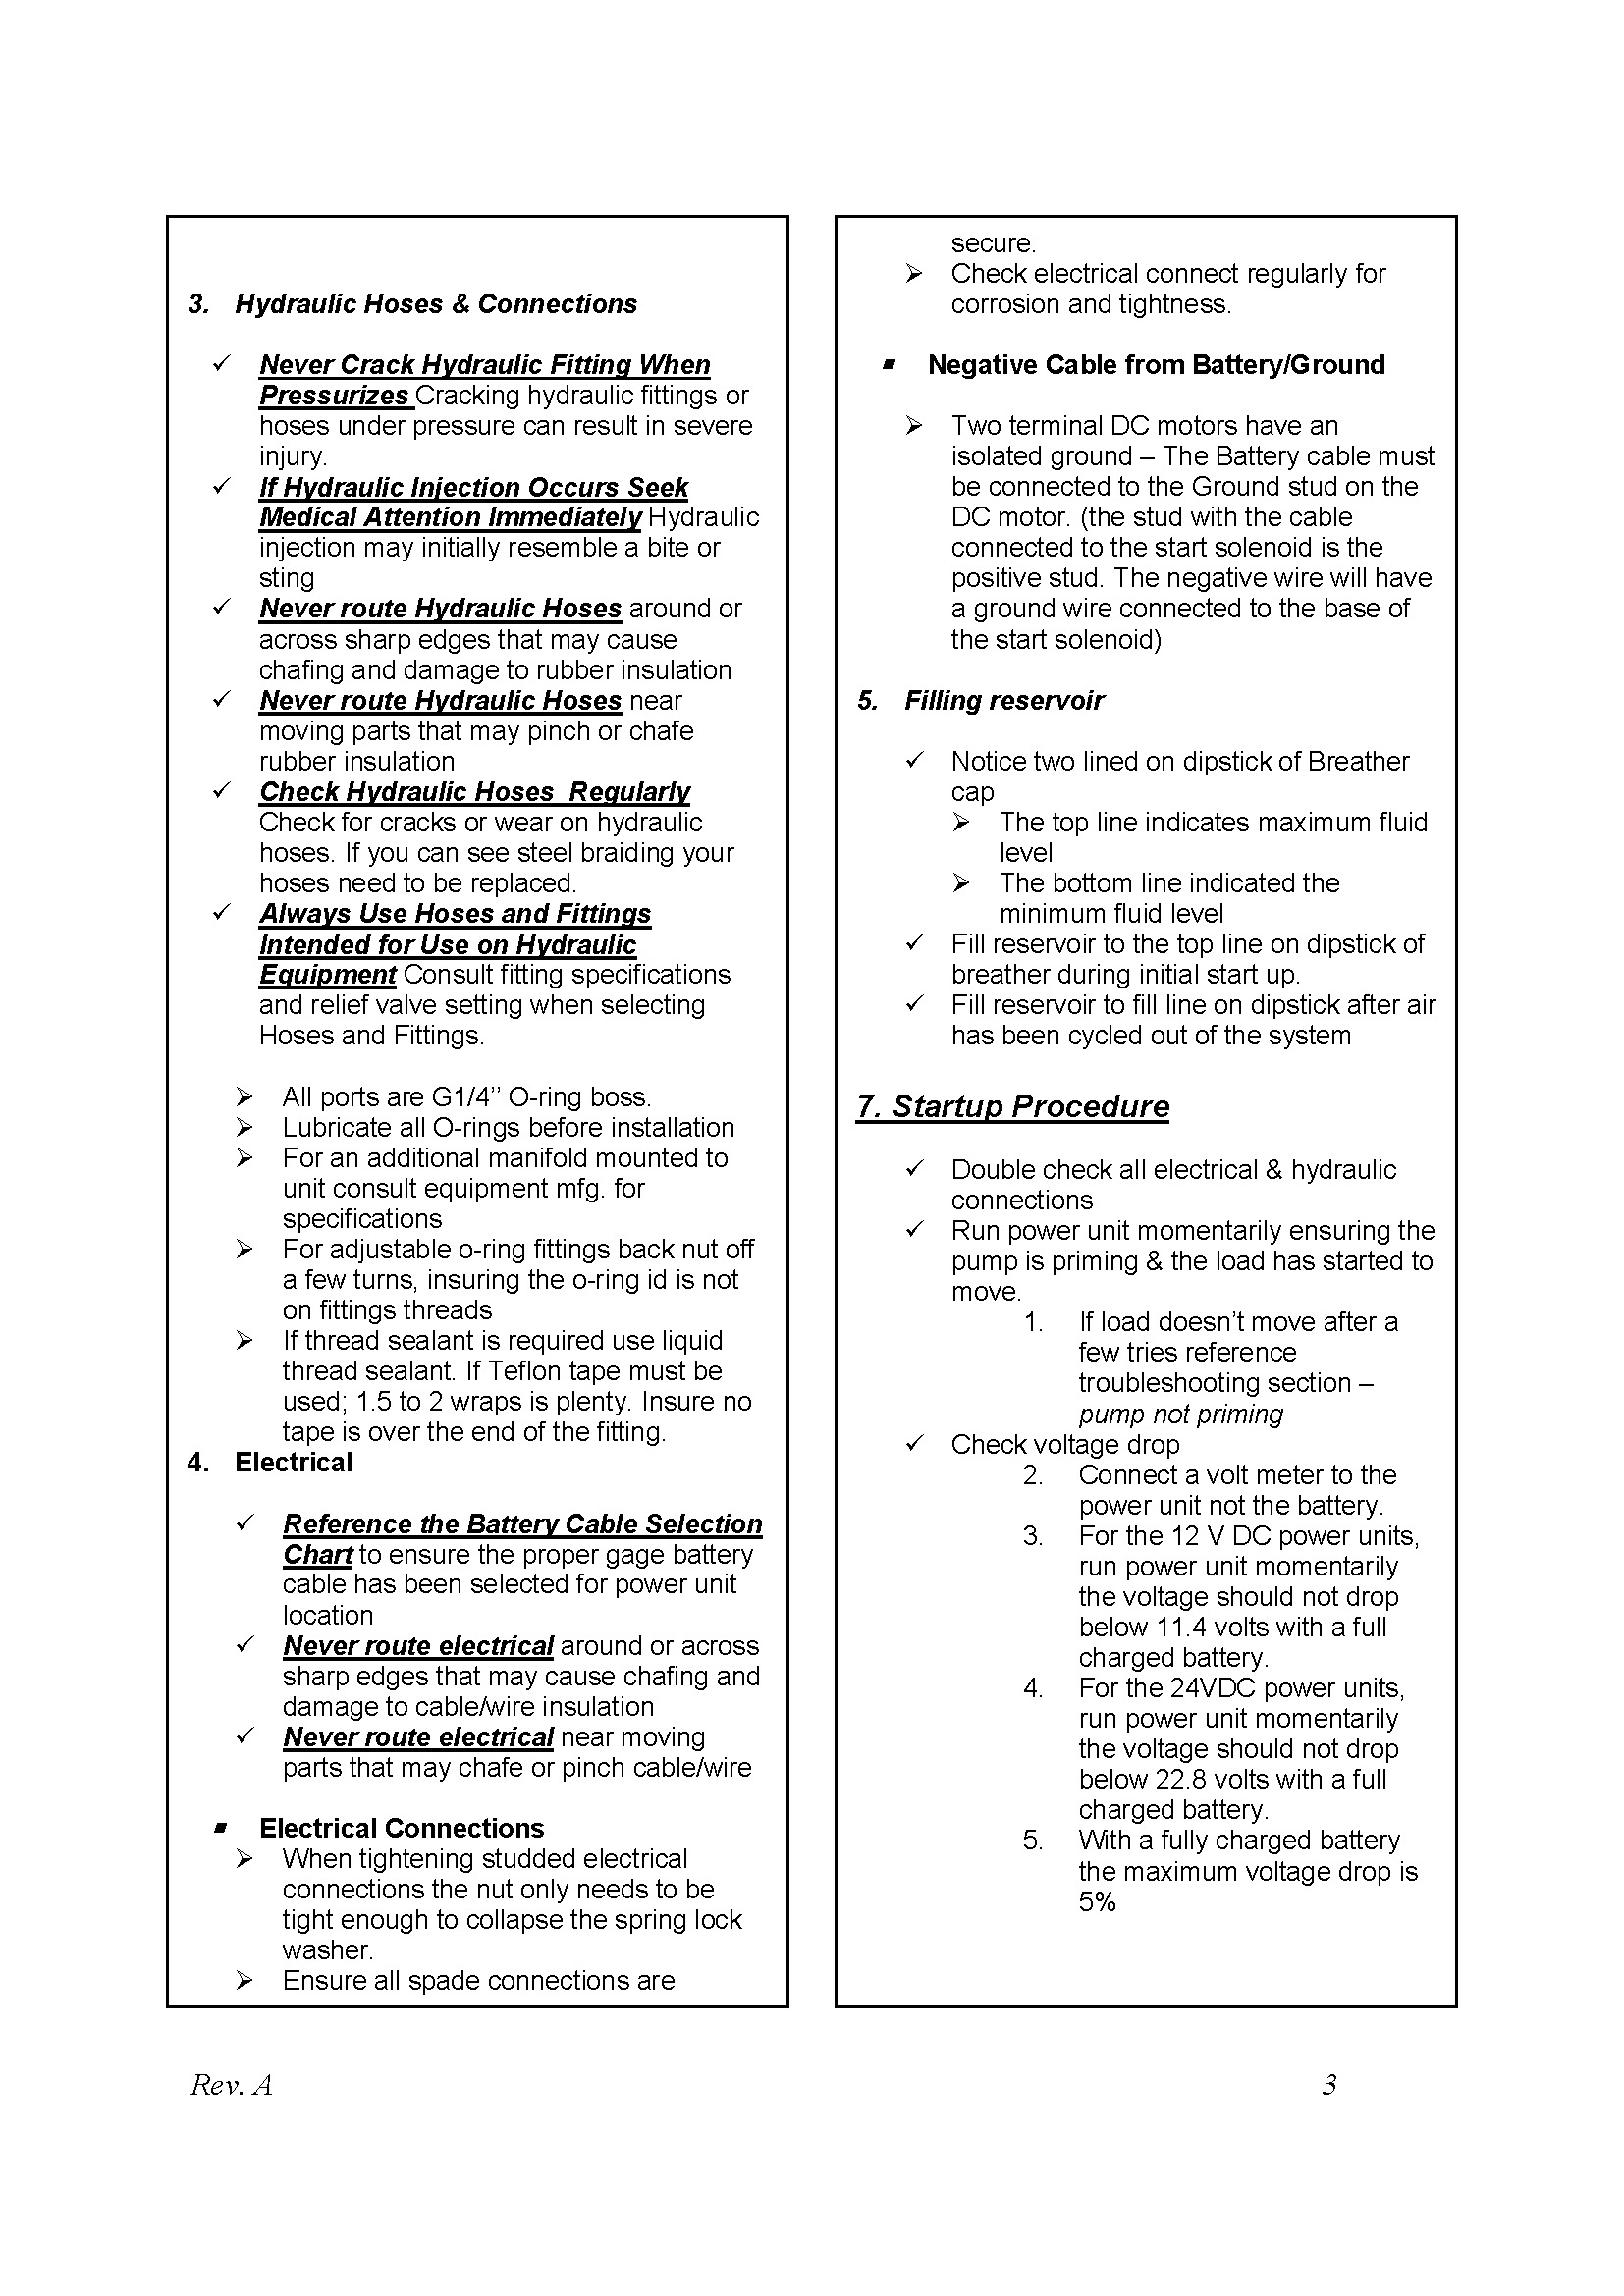 Power Pack Master Owners Manual - C&C Hydraulics Ltd